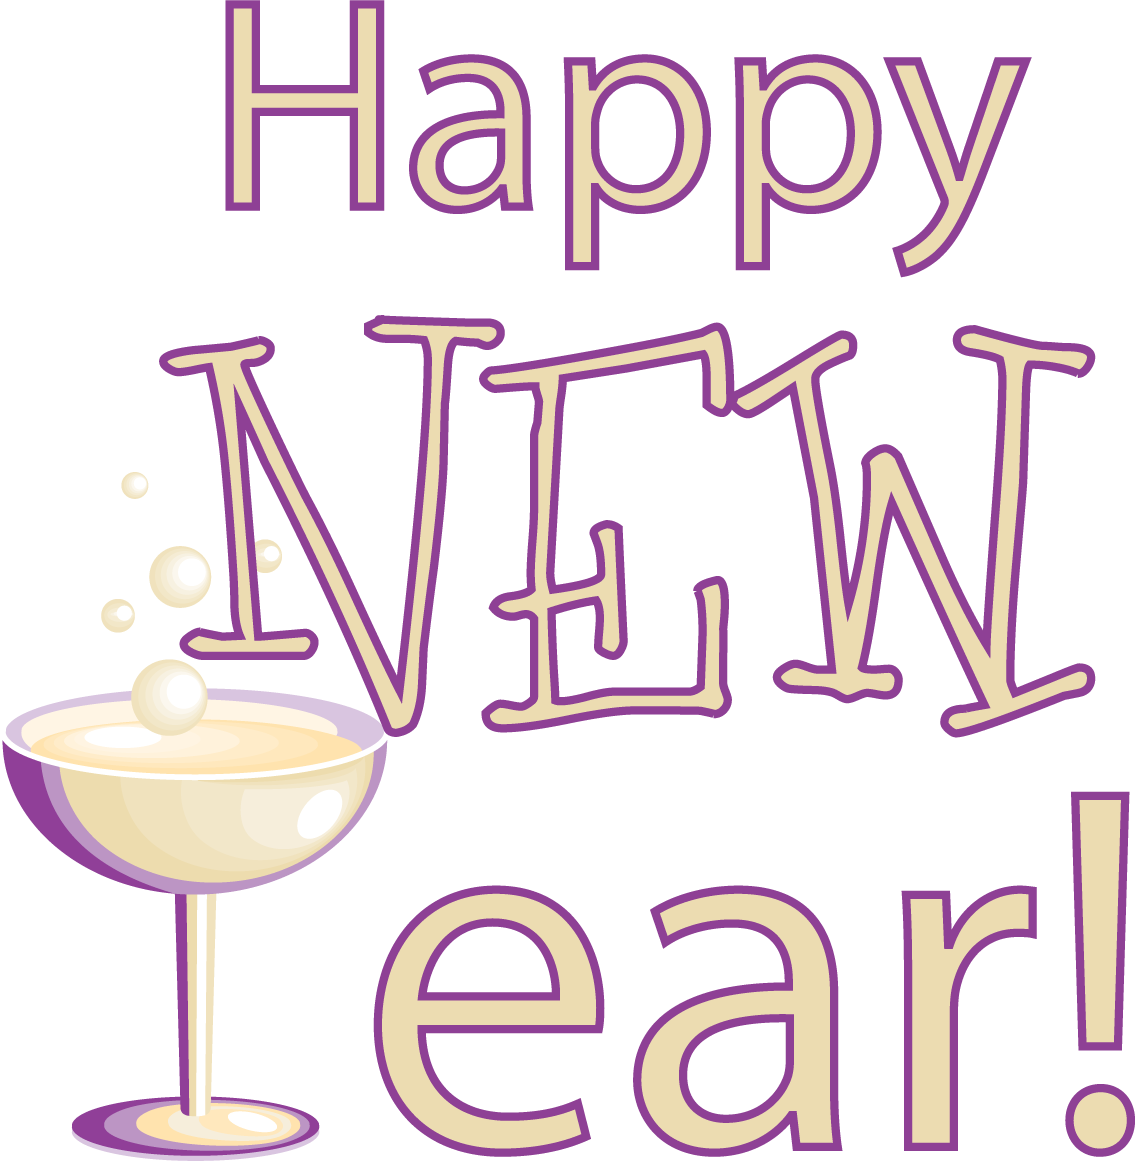 Happy New Year 2015 Png - Happy New Year 2015 Png Transparent Pic - 4026 - TransparentPNG